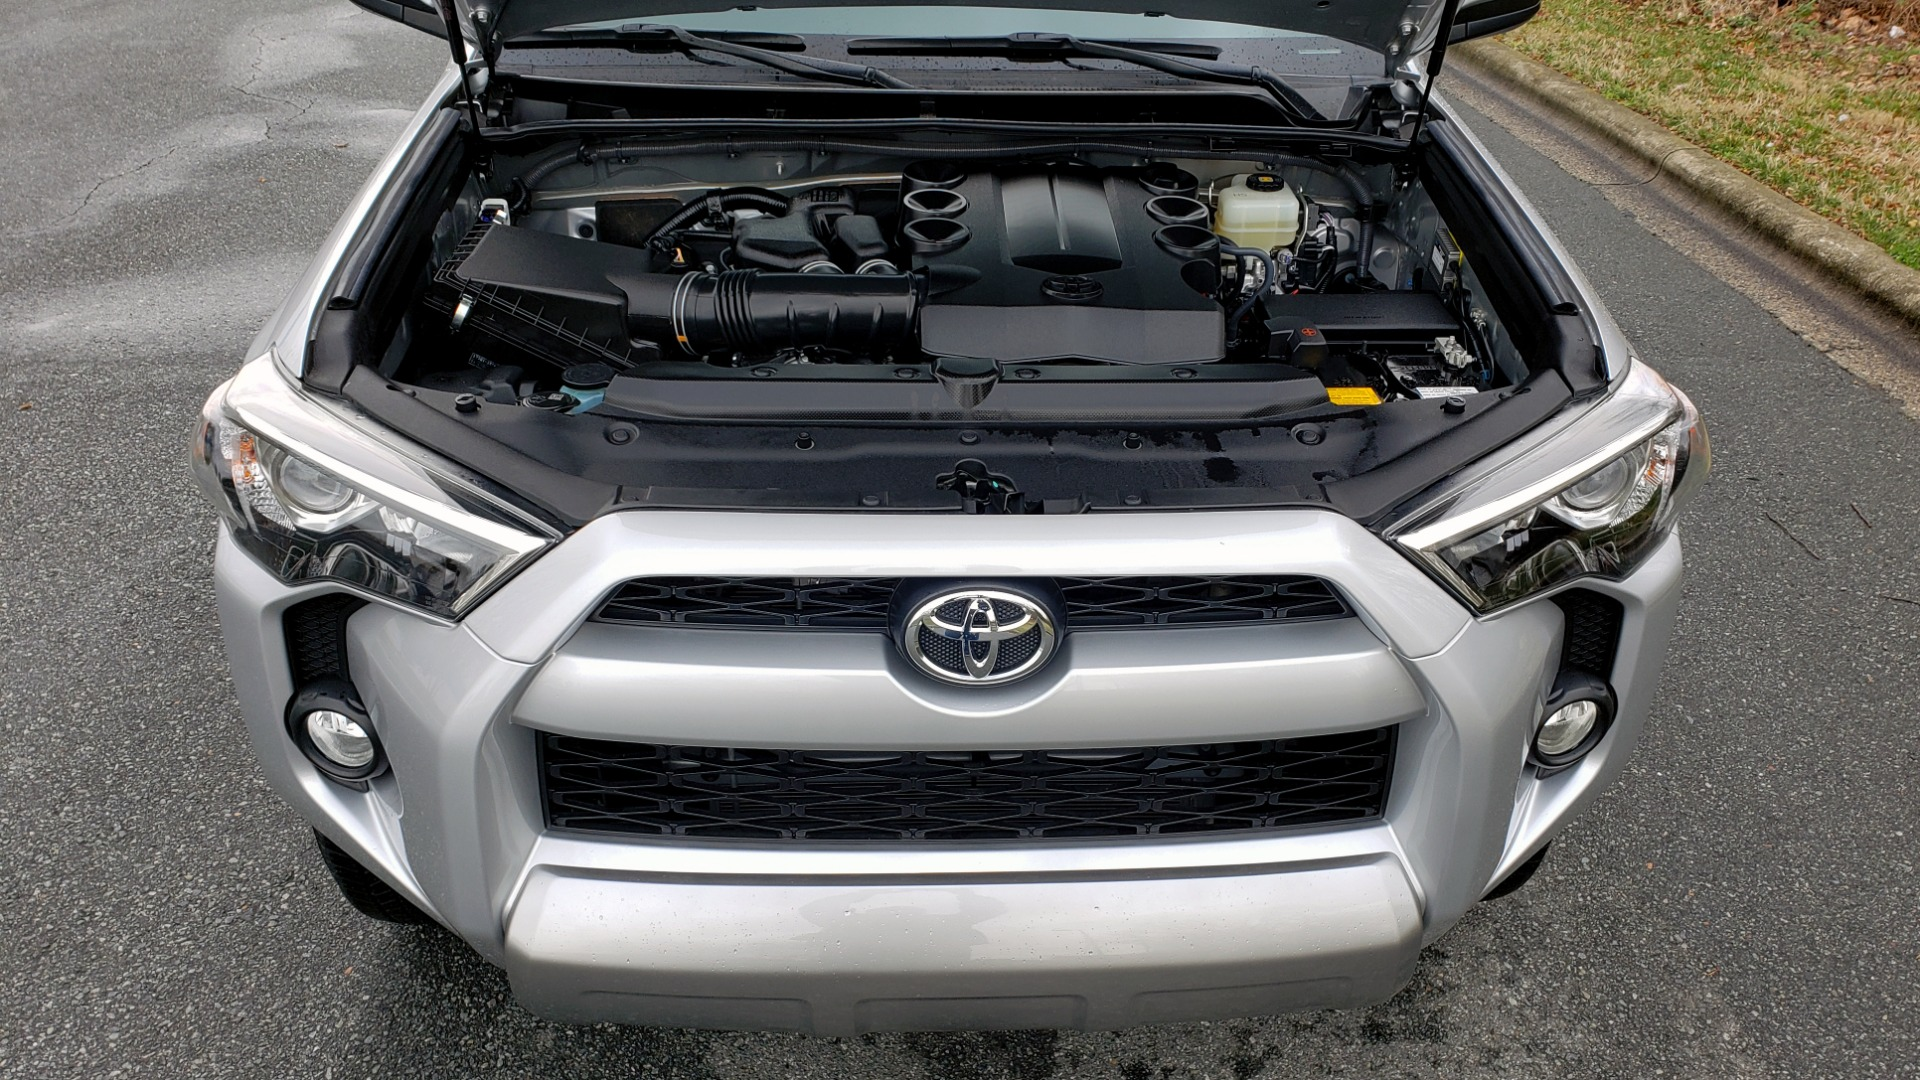 Used 2018 Toyota 4RUNNER TRD OFF-ROAD 4X4 / V6 / AUTO / LEATHER / LOW MILES! for sale Sold at Formula Imports in Charlotte NC 28227 15